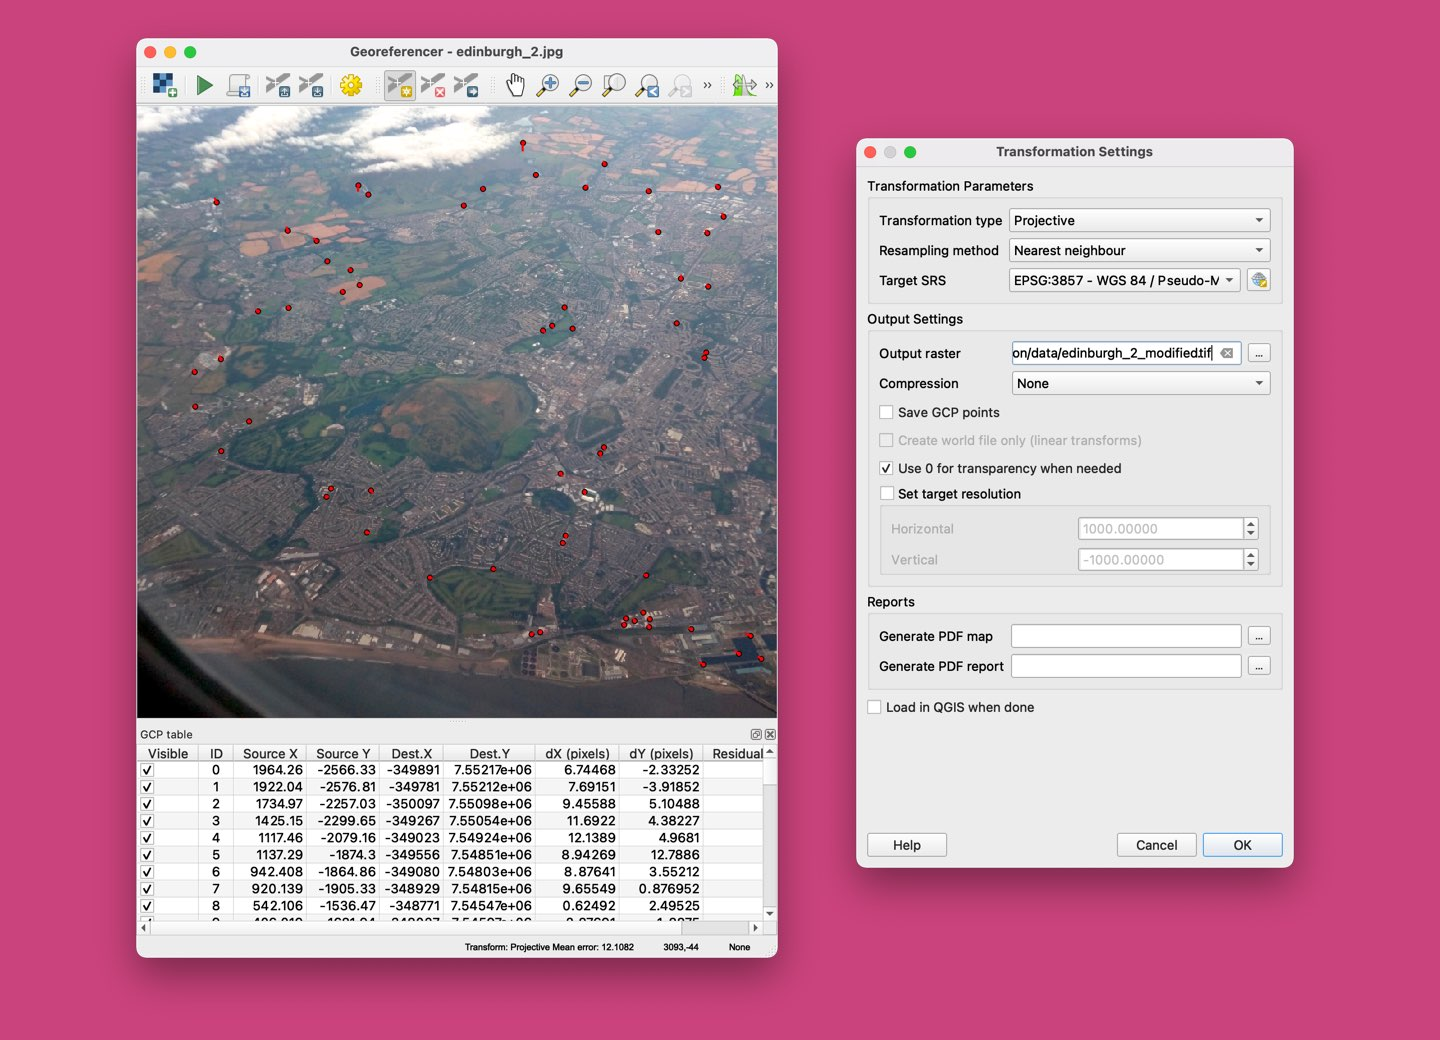 A screenshot of QGIS demonstrating the georeferencer tool being used on a photo of Edinburgh.